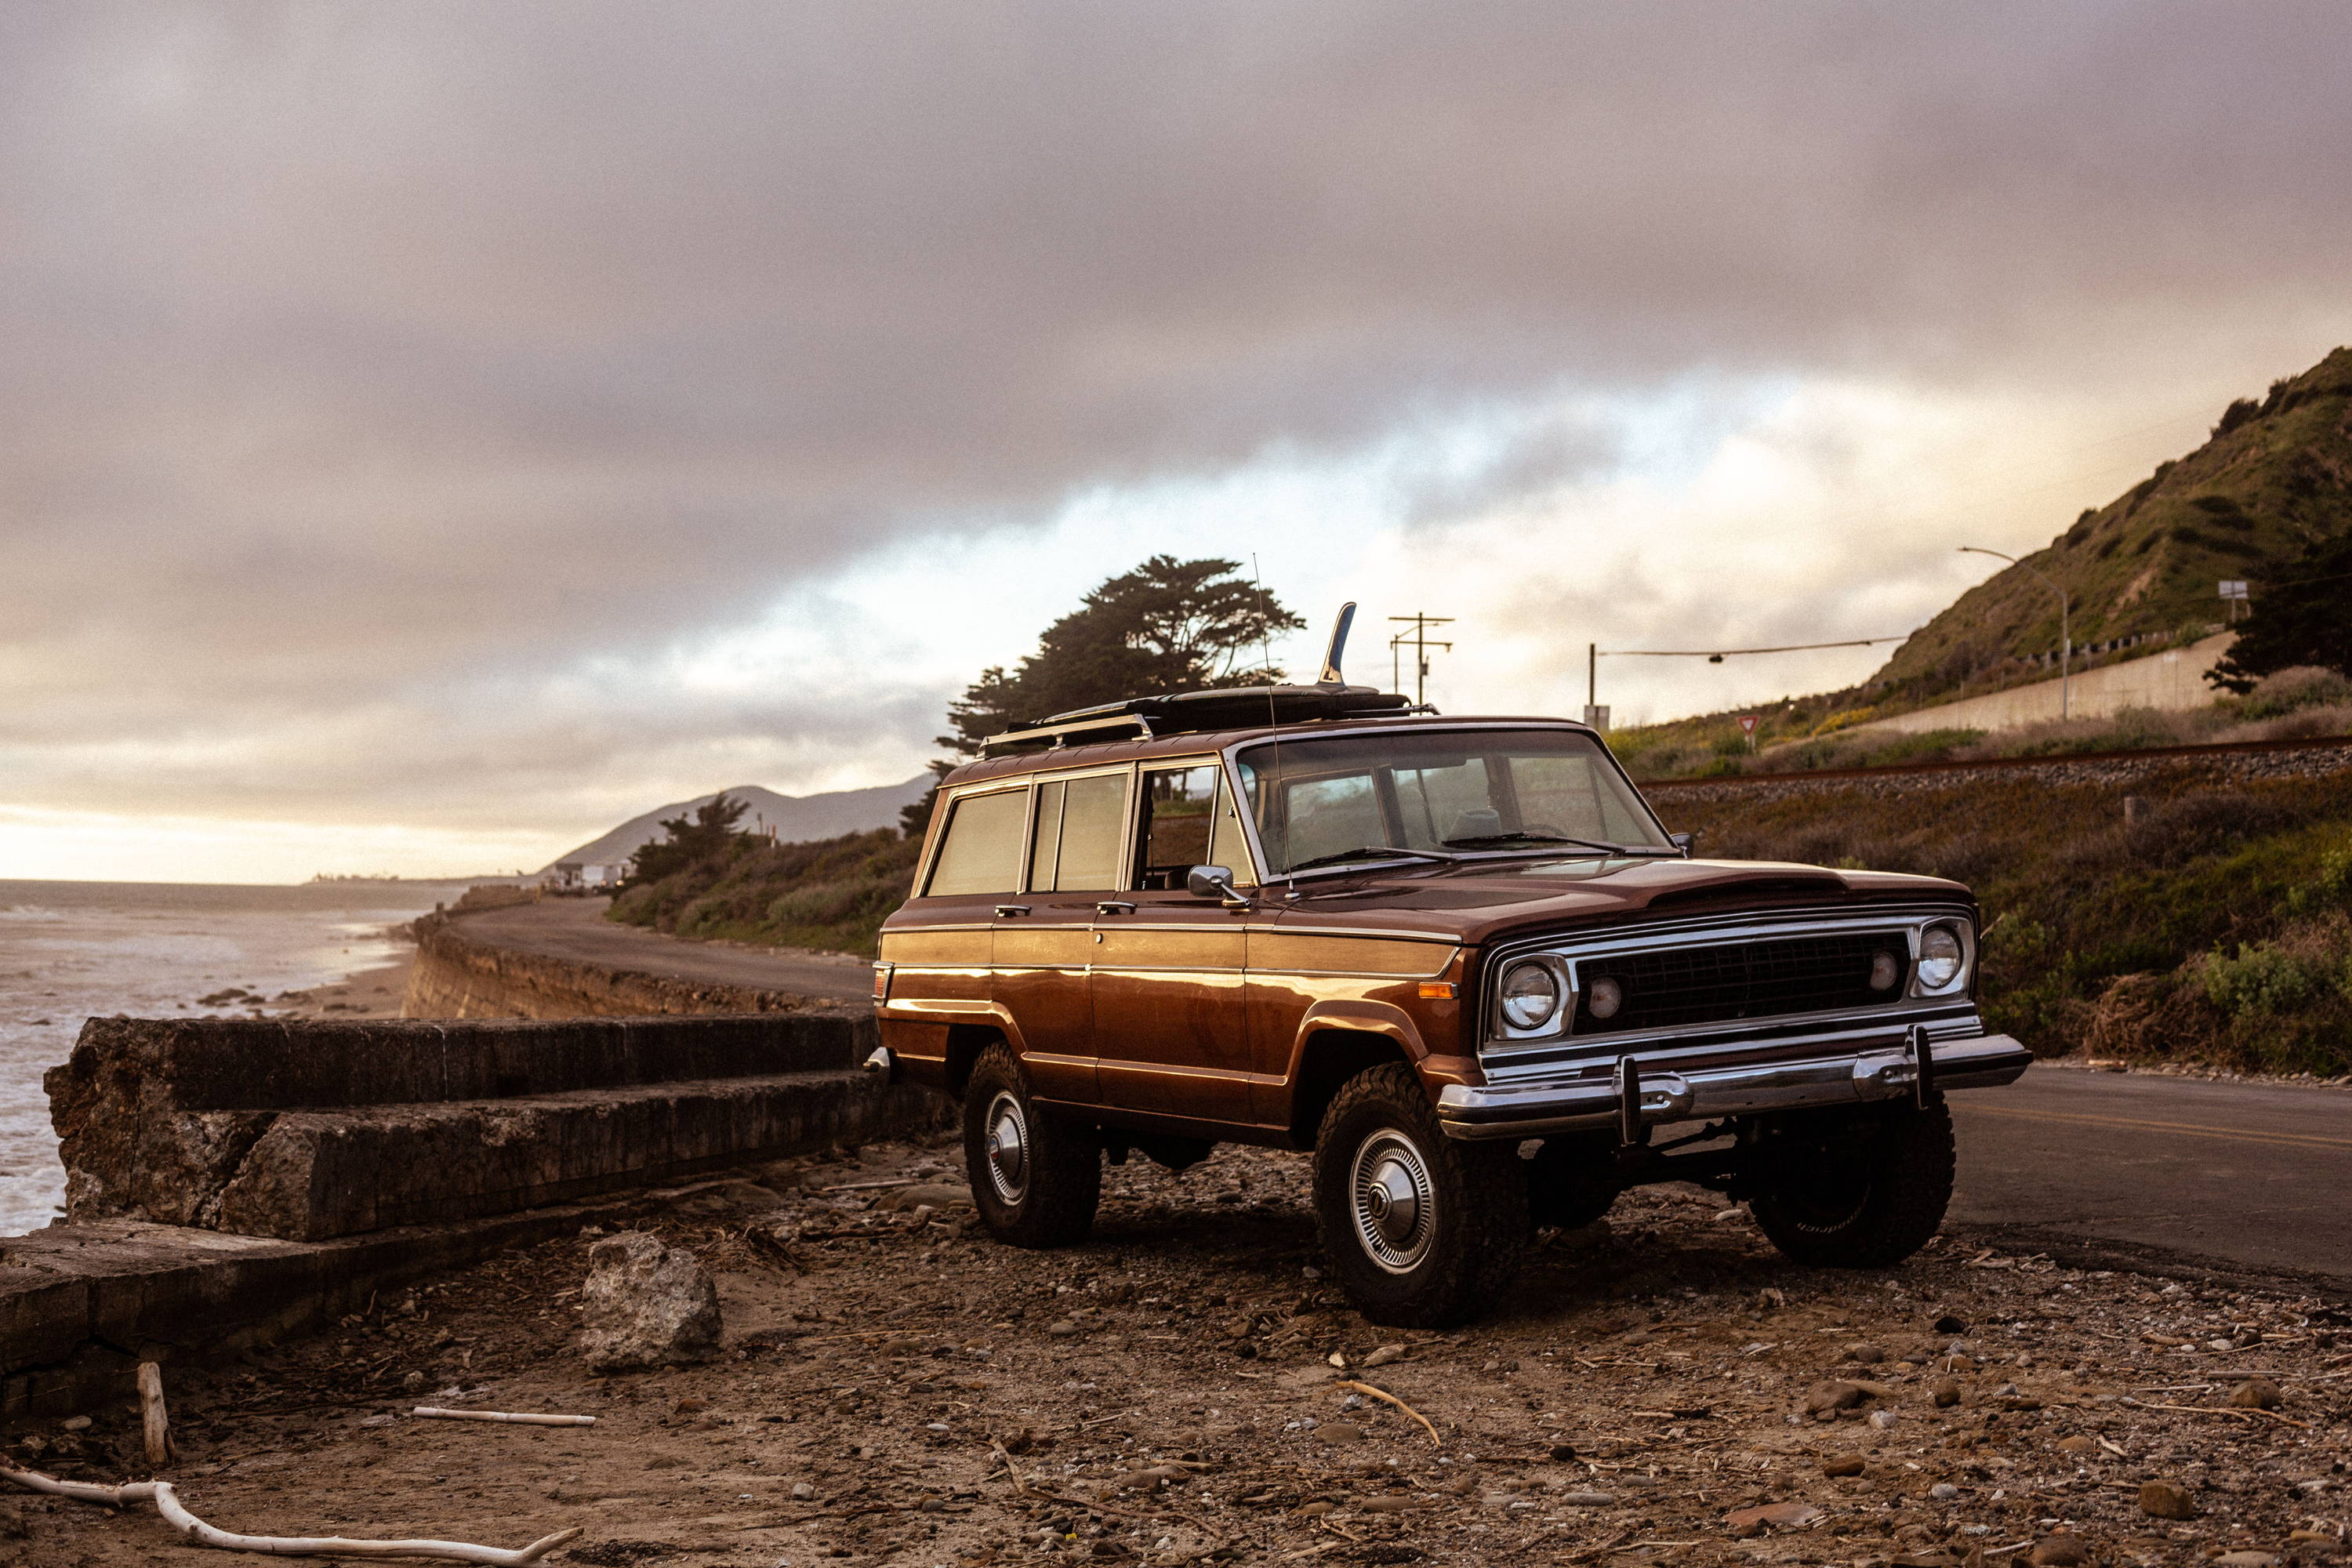 New Legend 4x4 x Iron & Resin 1978 Jeep Wagoneer Collaboration Build